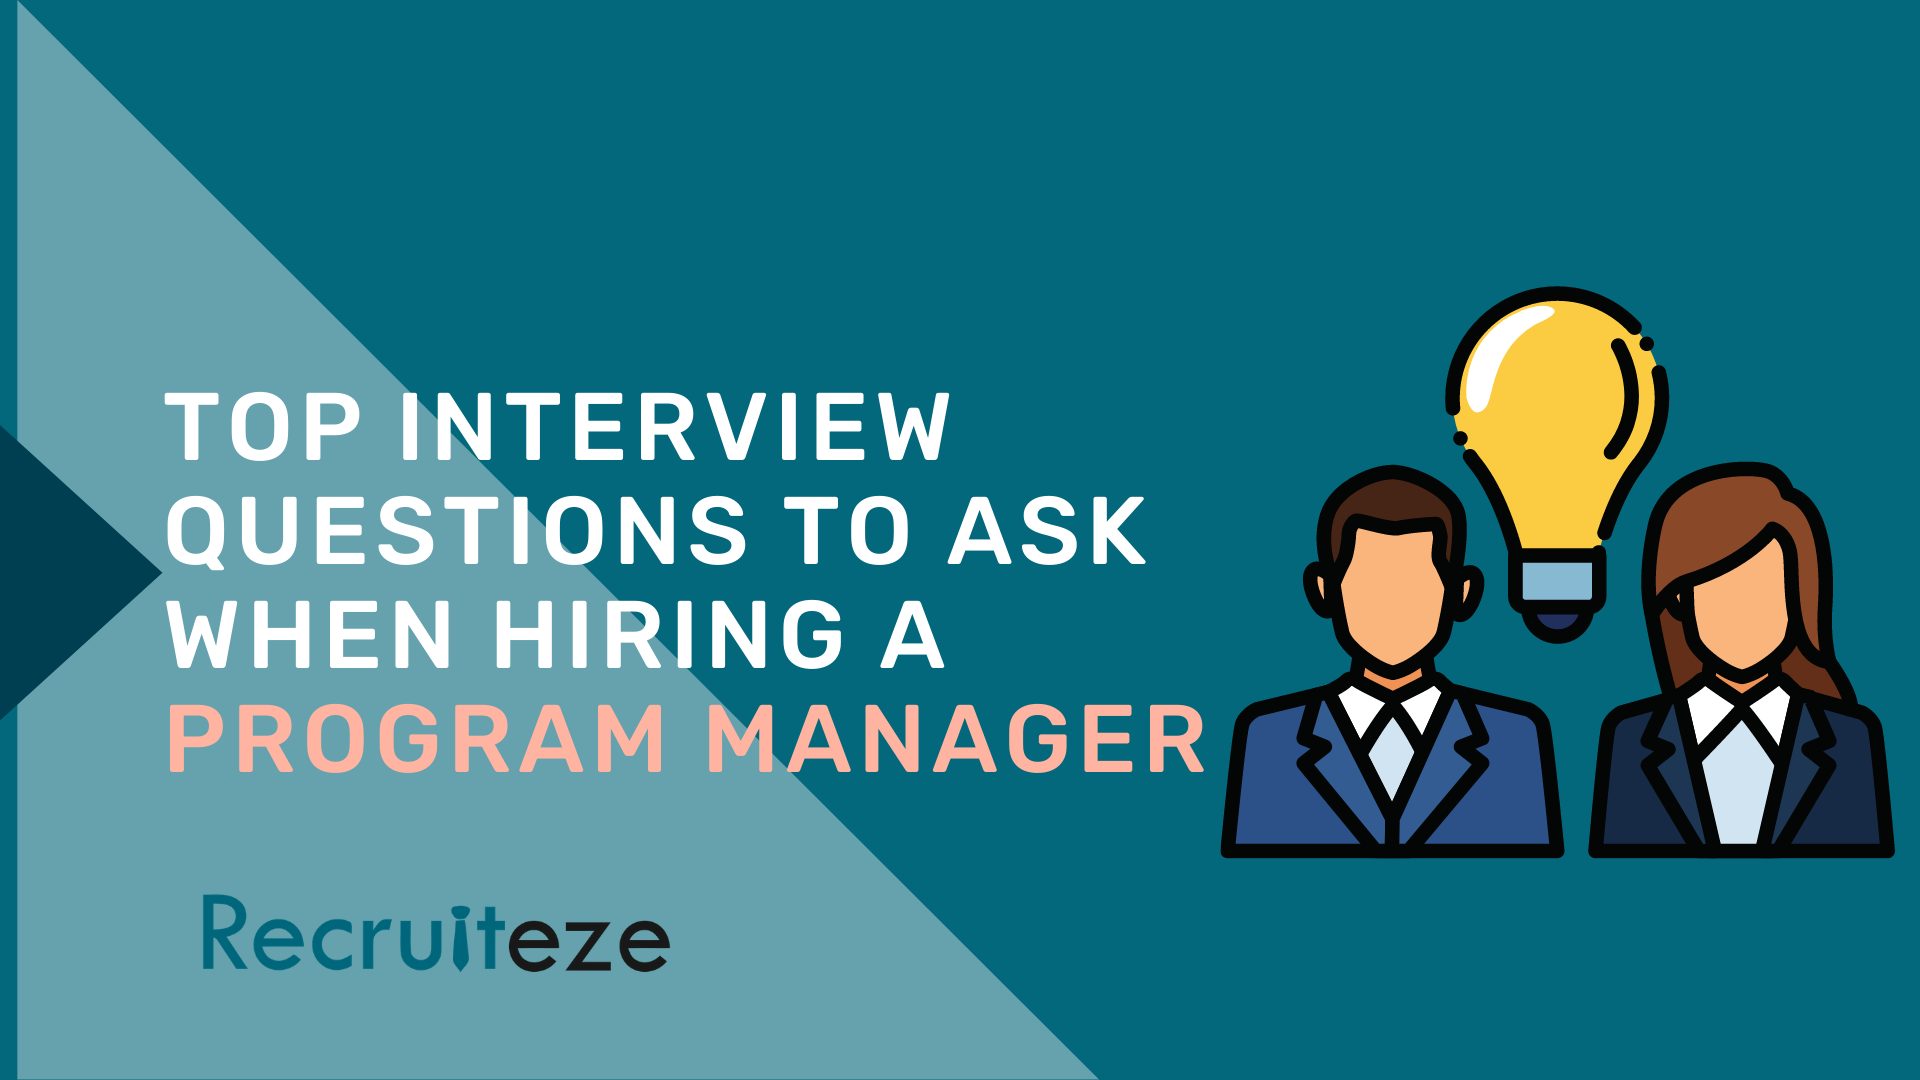 Recruiteze: Top Interview Questions to Ask When Hiring a Program Manager